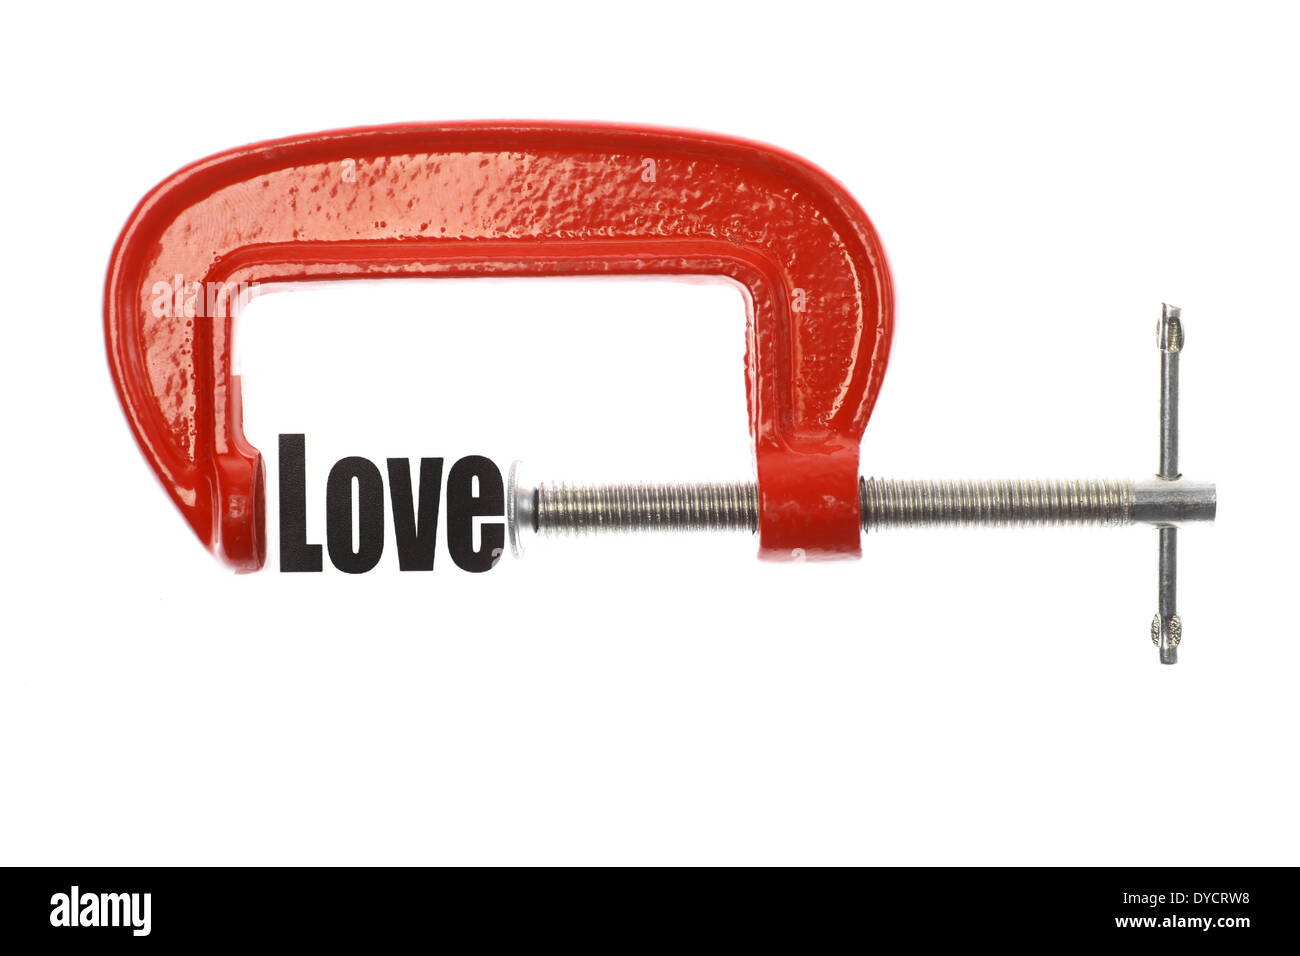 The word 'Love' is compressed with a vice. - Stock Image